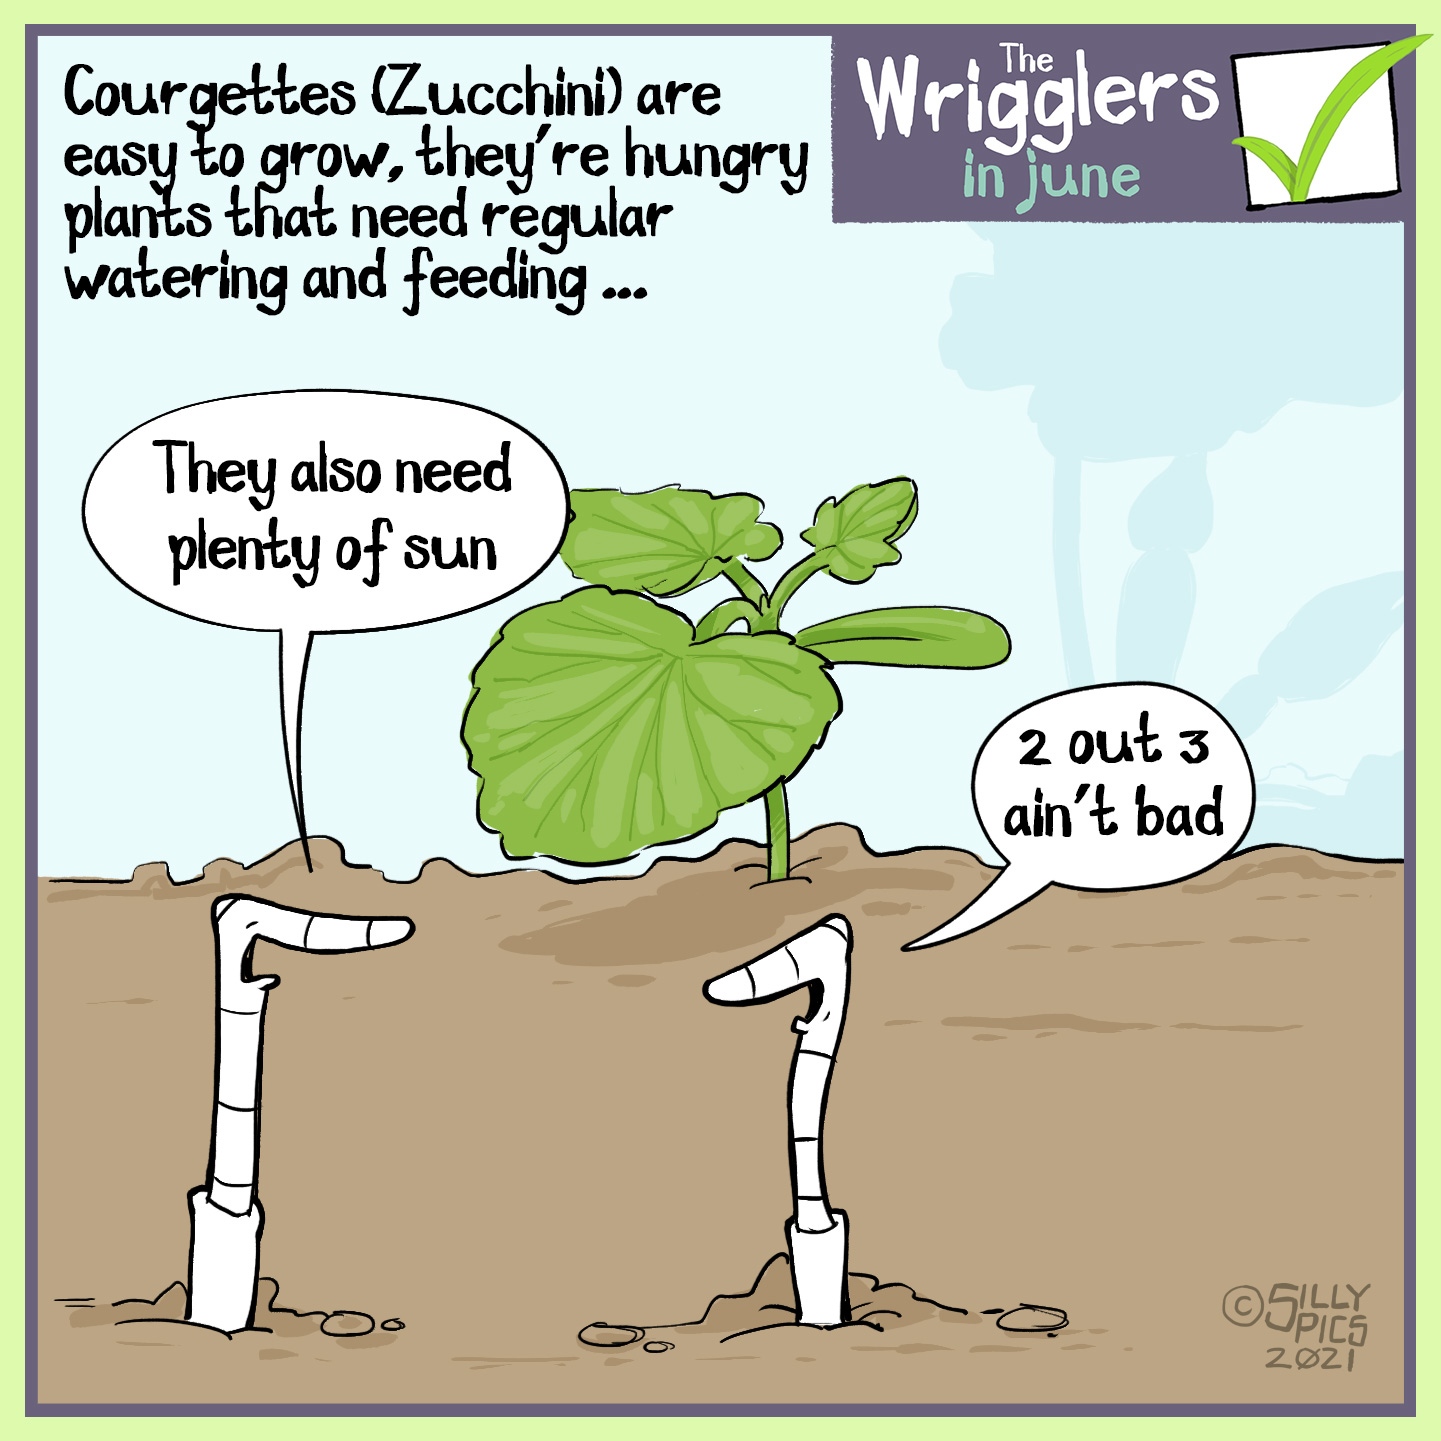 """The cartoon reads, Courgettes (Zucchini) are easy to grow, they're hungry plants that need regular watering and feeding The cartoon is of two worms sitting in front of a small courgette plant. One worm says, """" They also need plenty of sun …"""""""" The other worm replies, """"2 out of 3 ain't bad"""""""